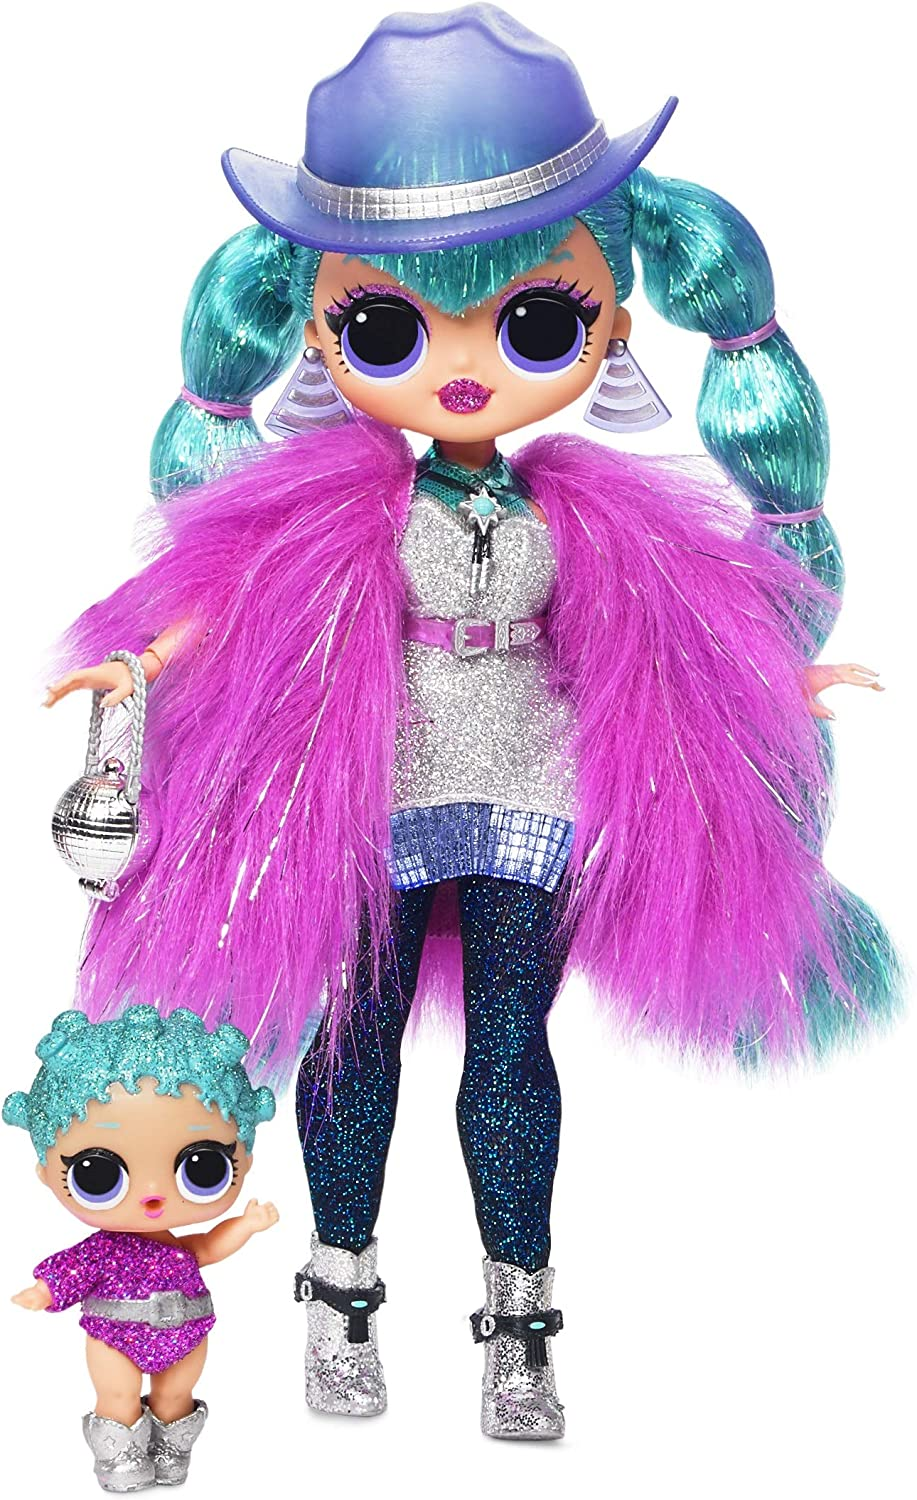 Lol Surprise Omg Winter Disco Cosmic Nova Fashion Doll Sister